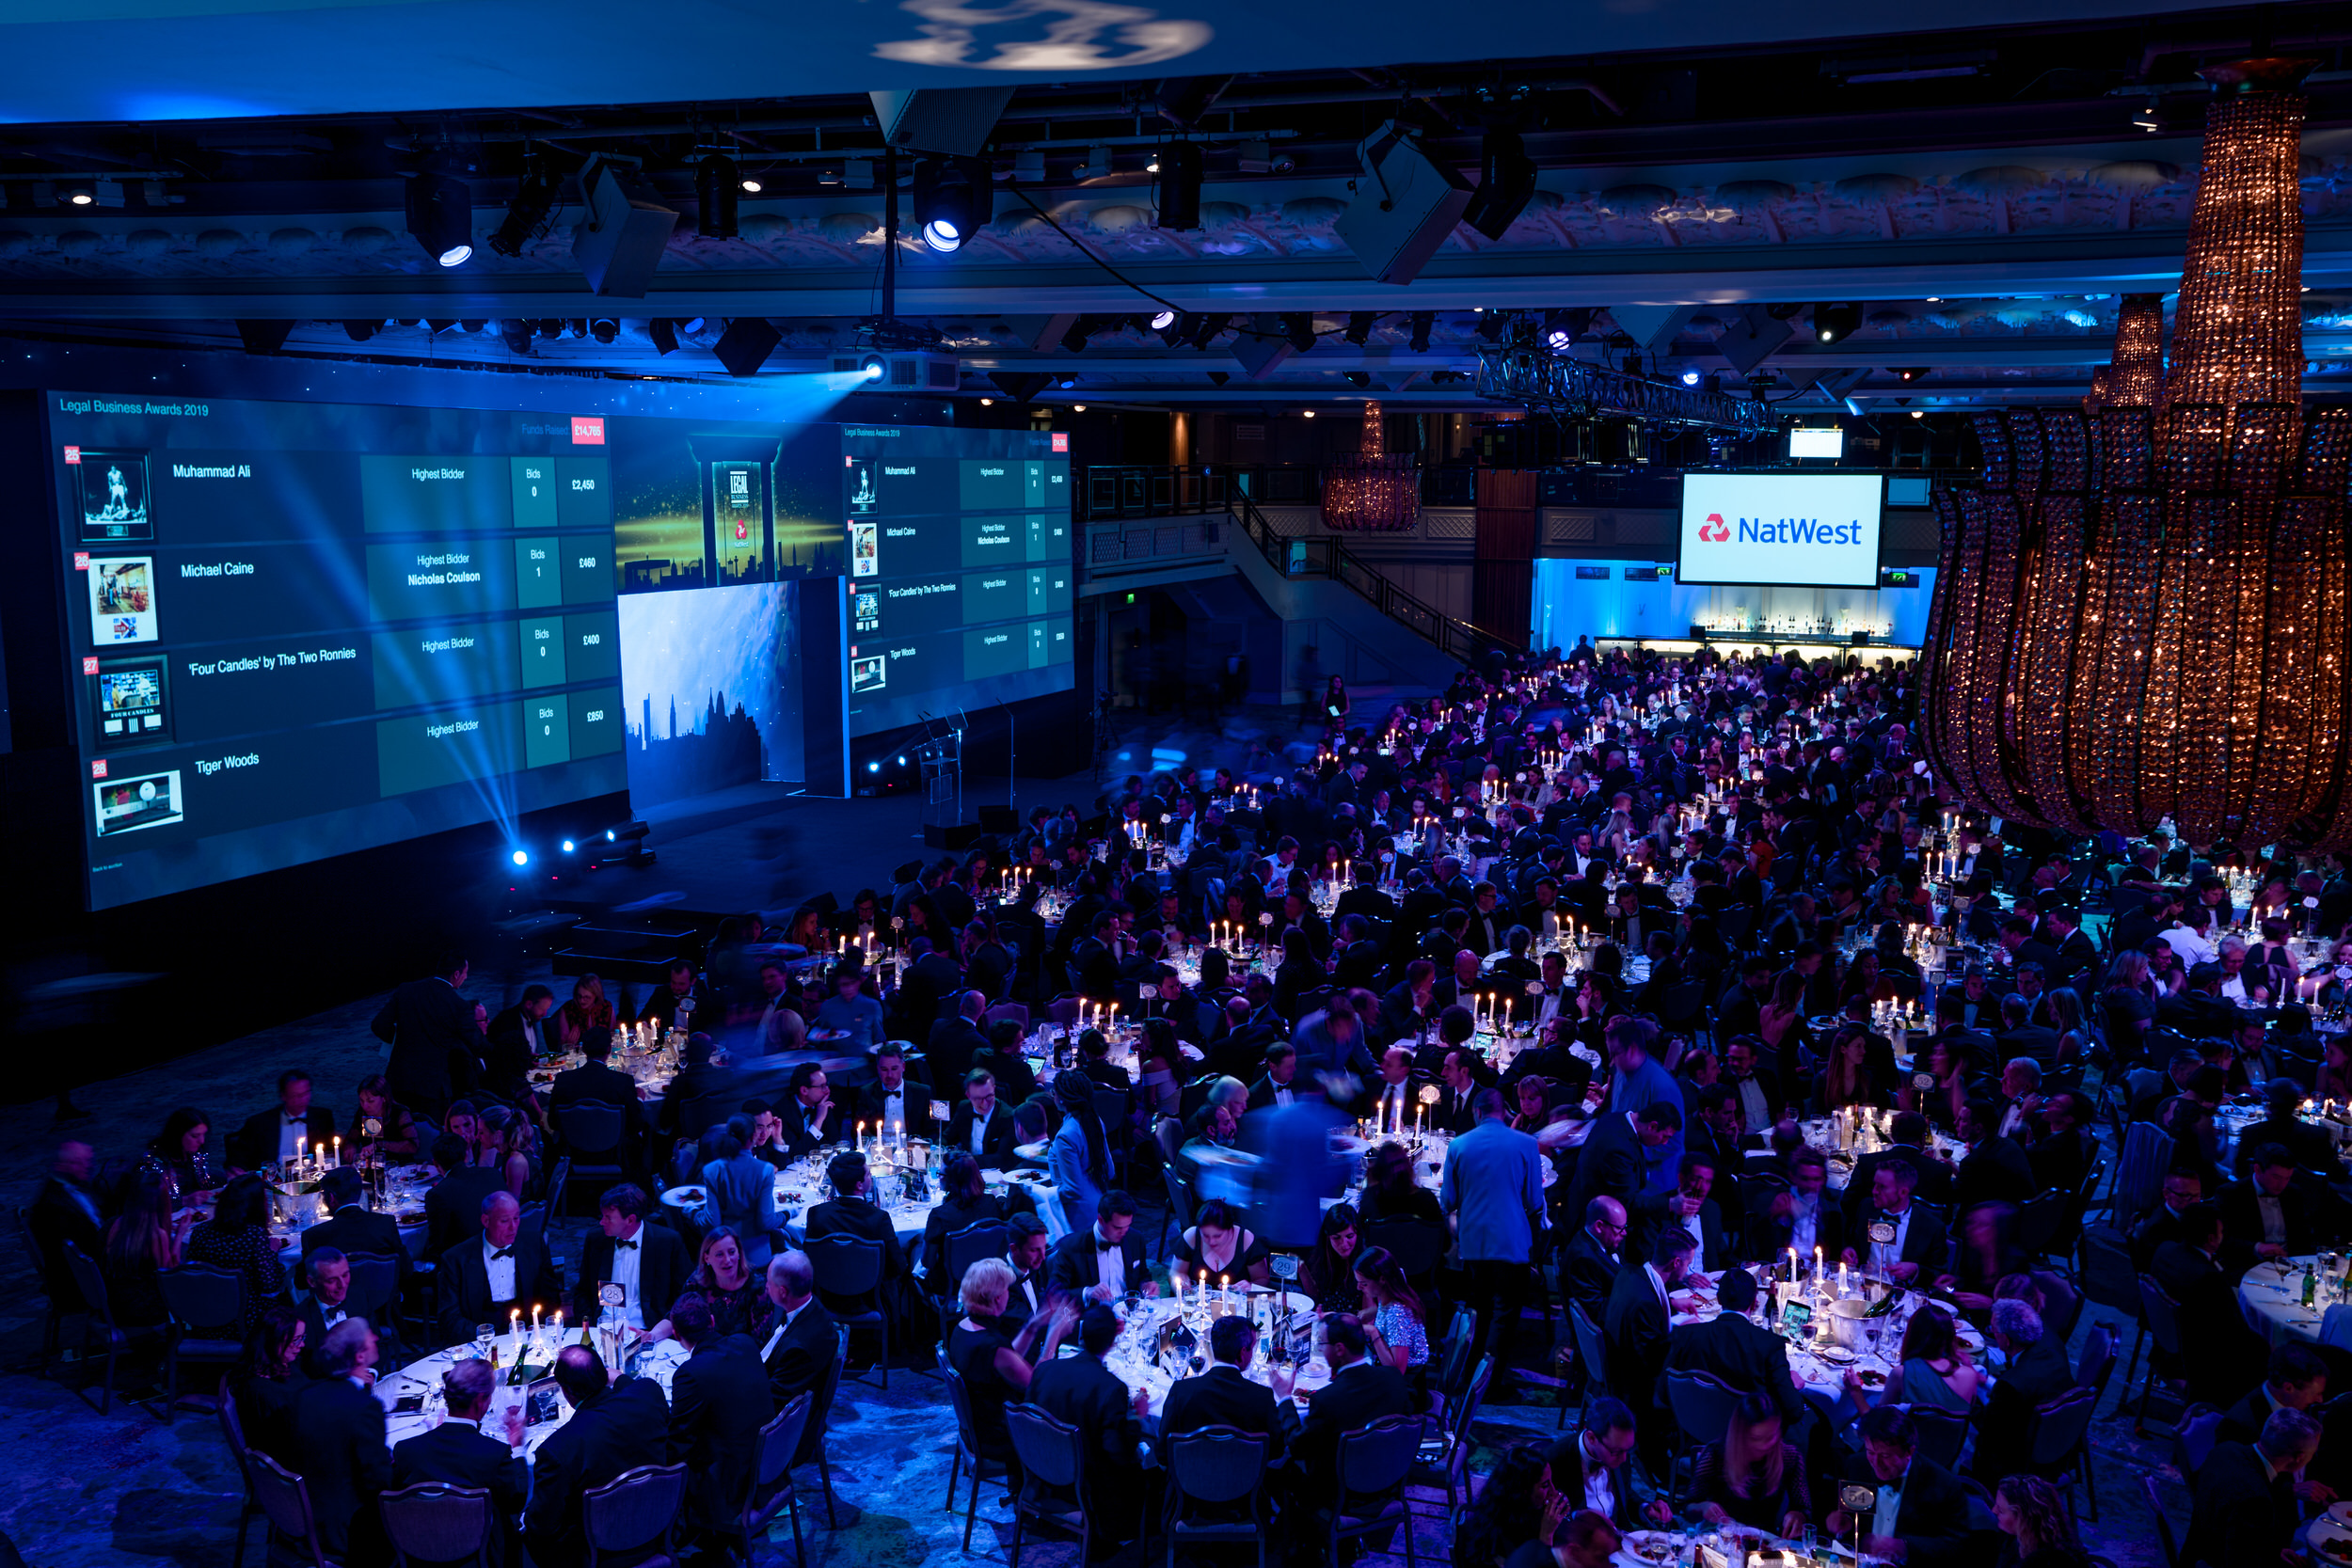 Legal_Business_Awards_2019_Highlights_015_Andy_Tyler_Photography__AT23097.jpg